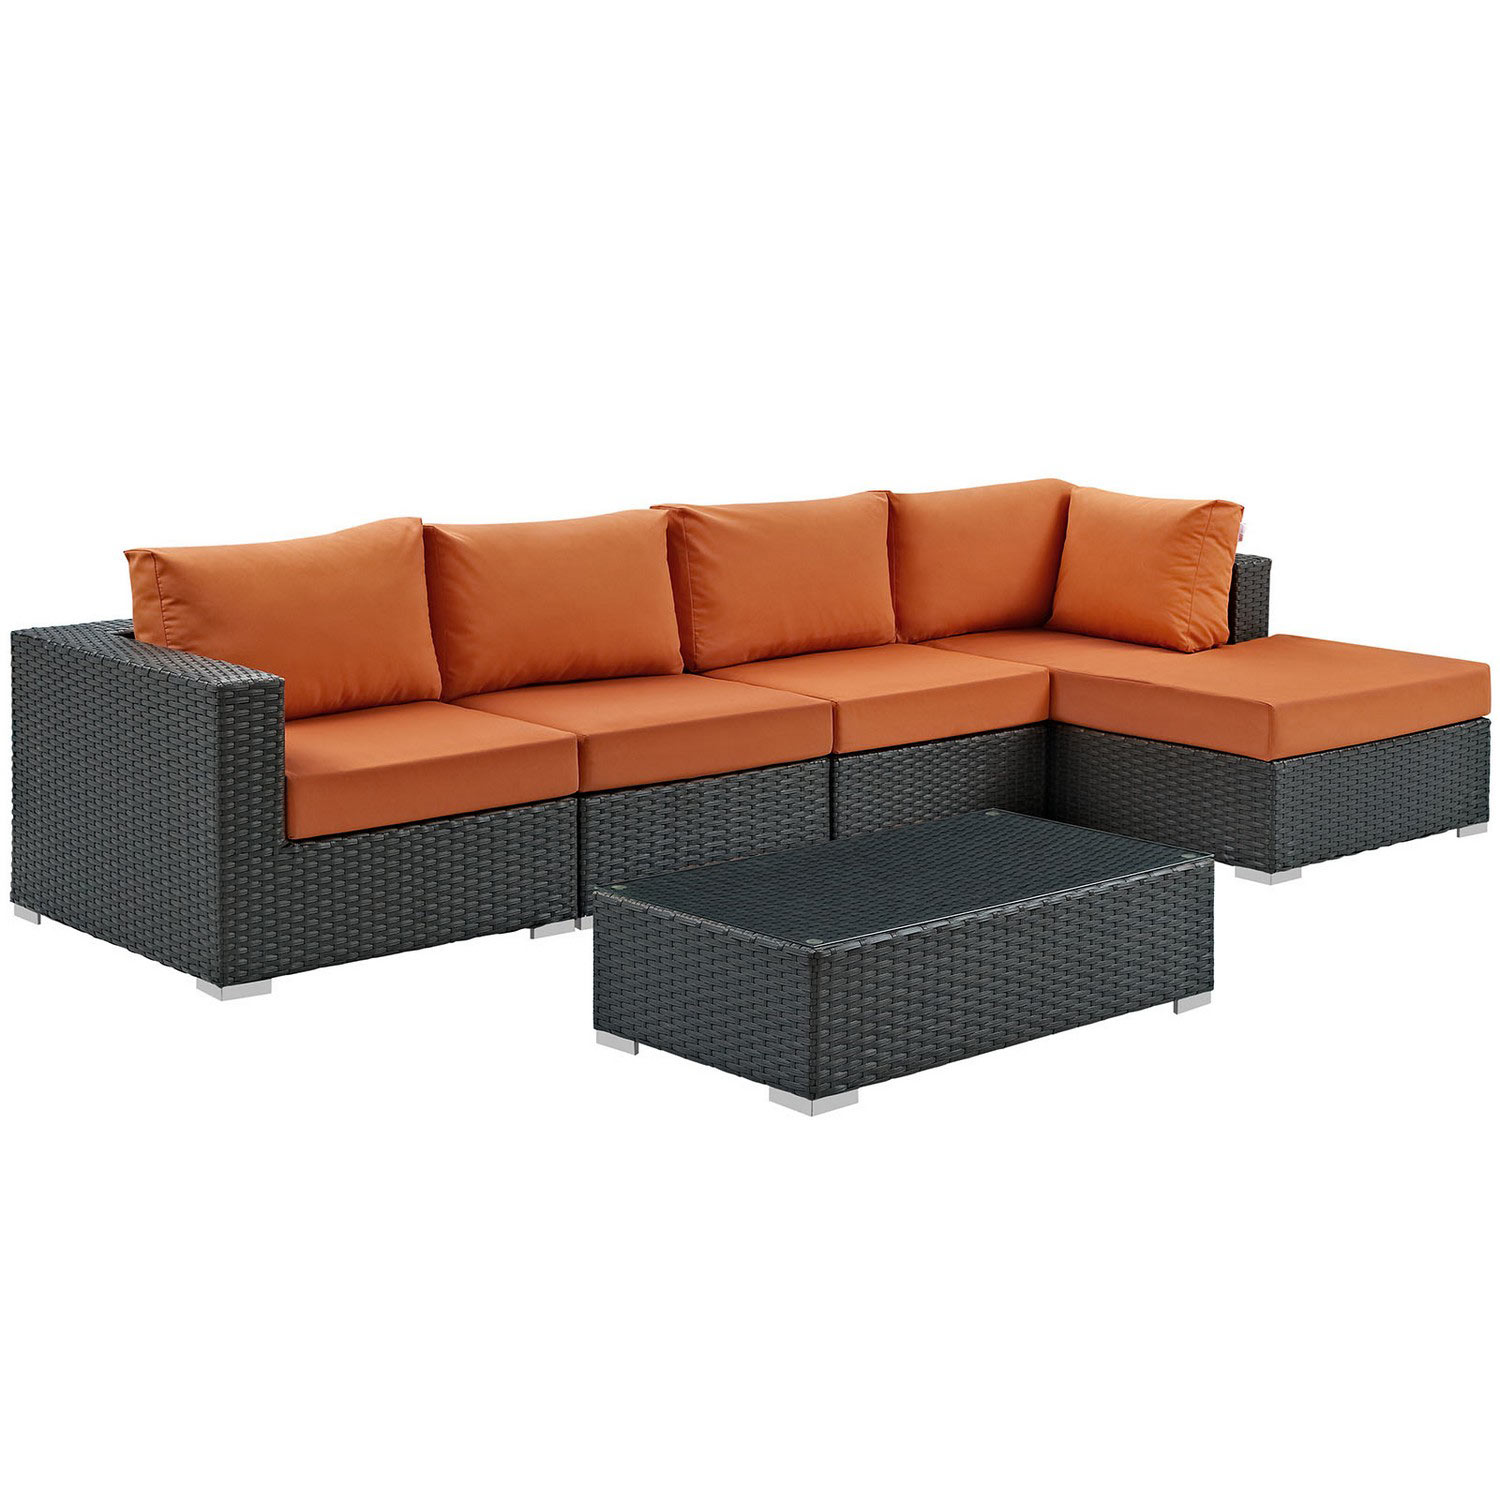 Modway Sojourn 5 Piece Outdoor Patio Sunbrella Sectional